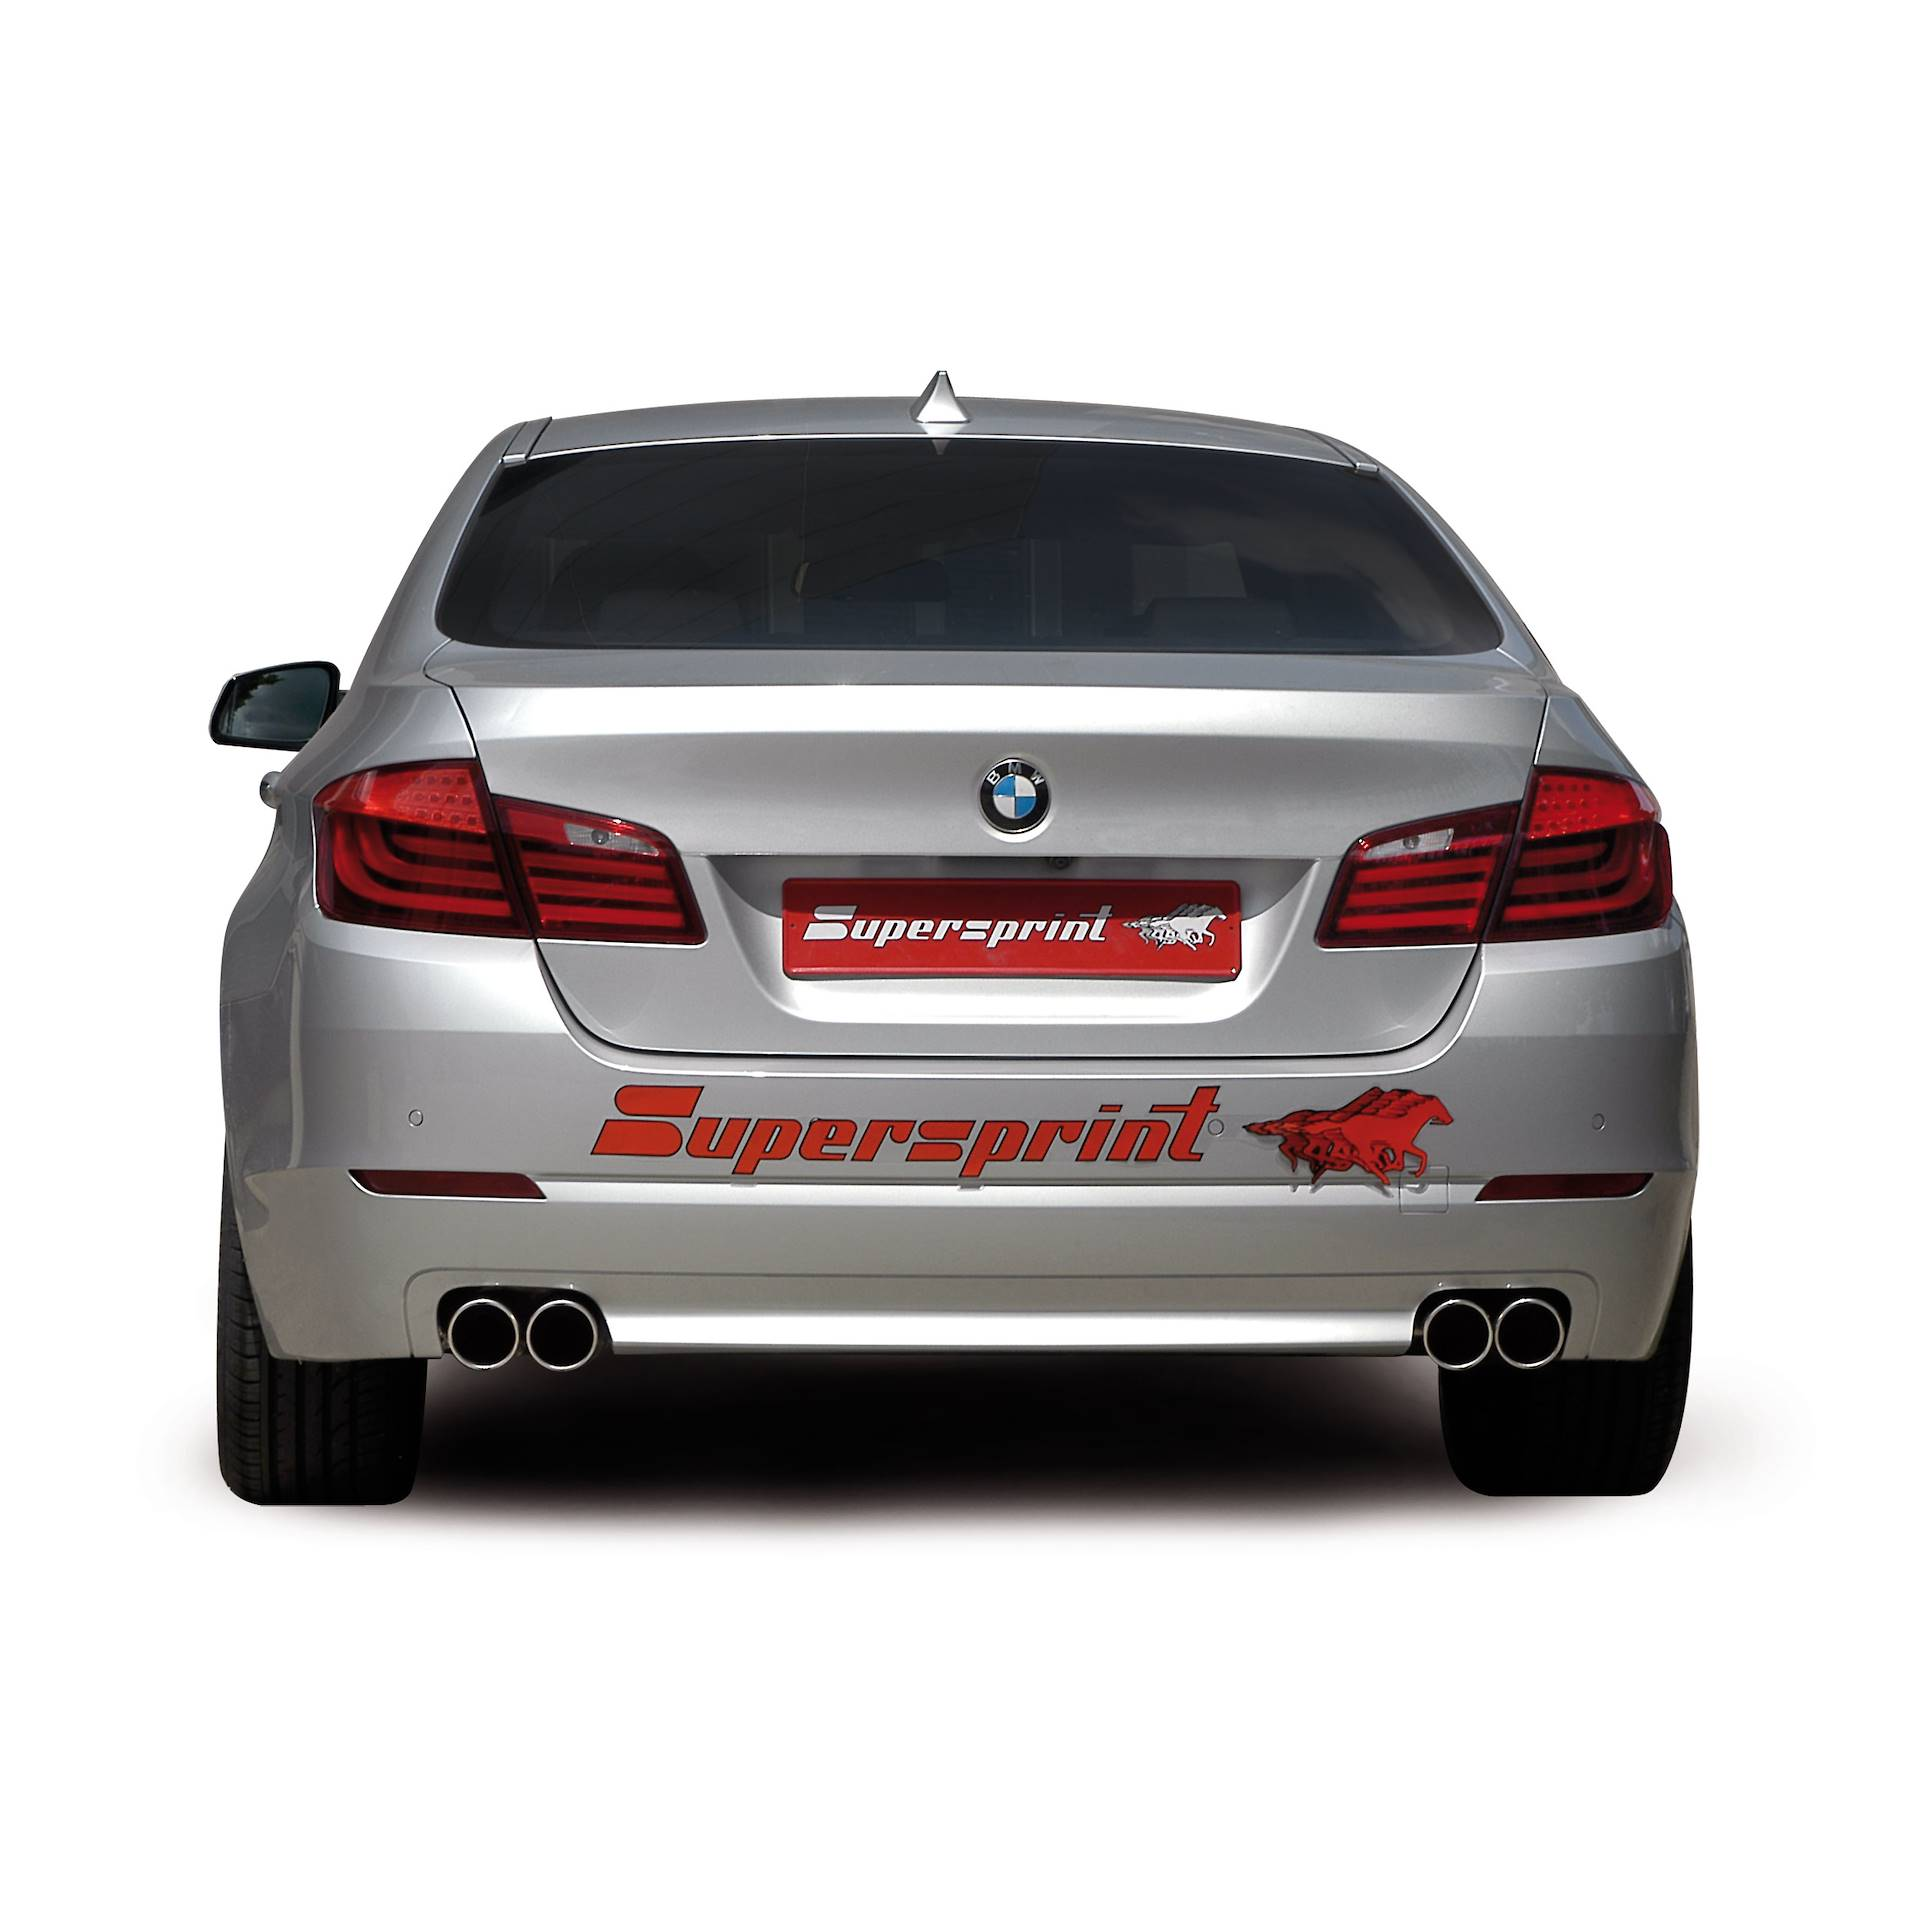 BMW - BMW F10 / F11 523i (N52N/N53 Engine-6 cyl.- 203 Hp) '09 -> '11